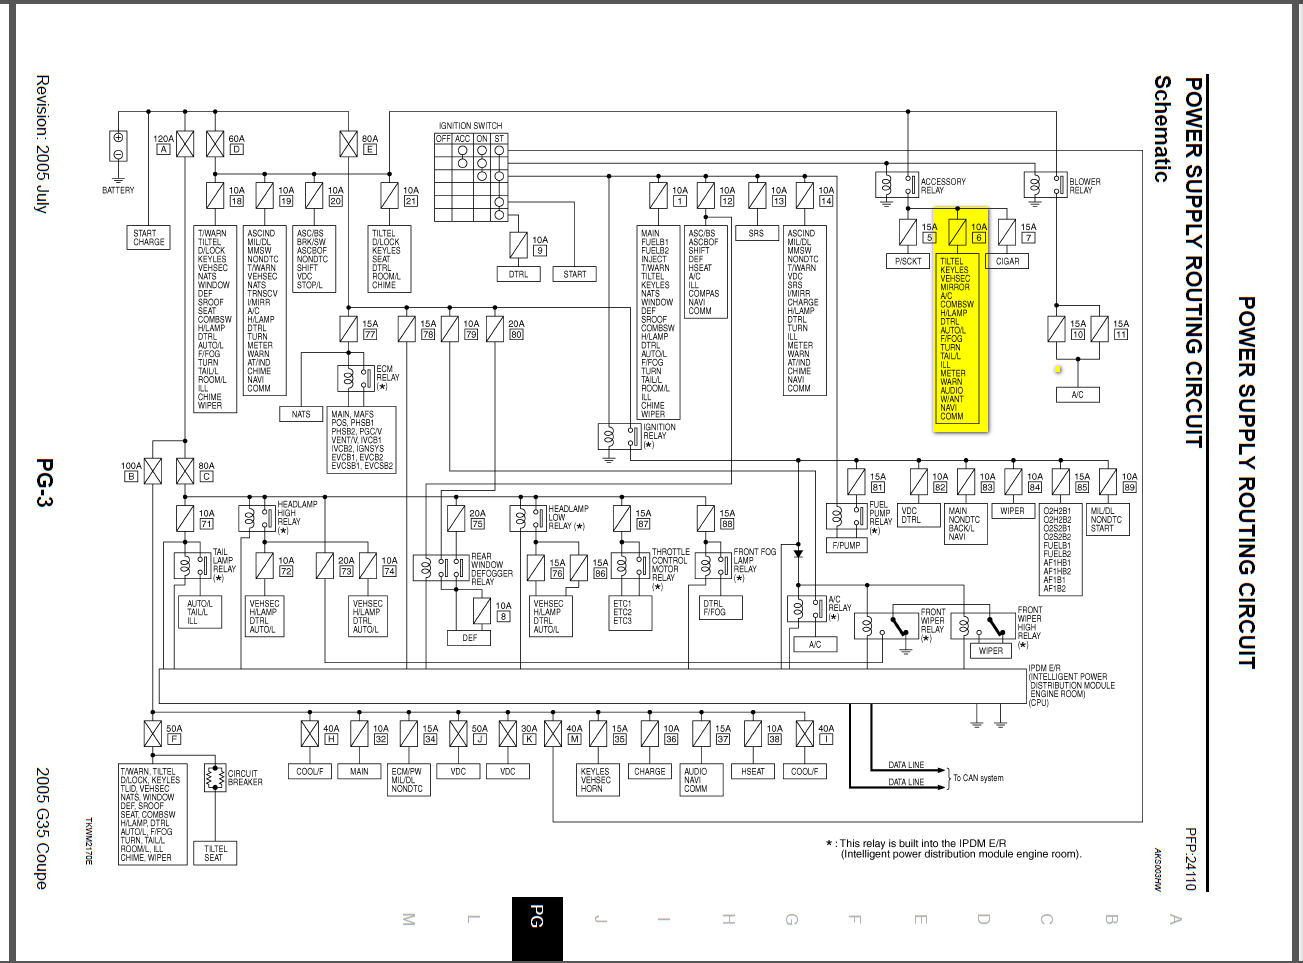 2002 Infiniti G35 Fuse Box Diagram Wiring Diagrams Site Popular A Popular A Geasparquet It